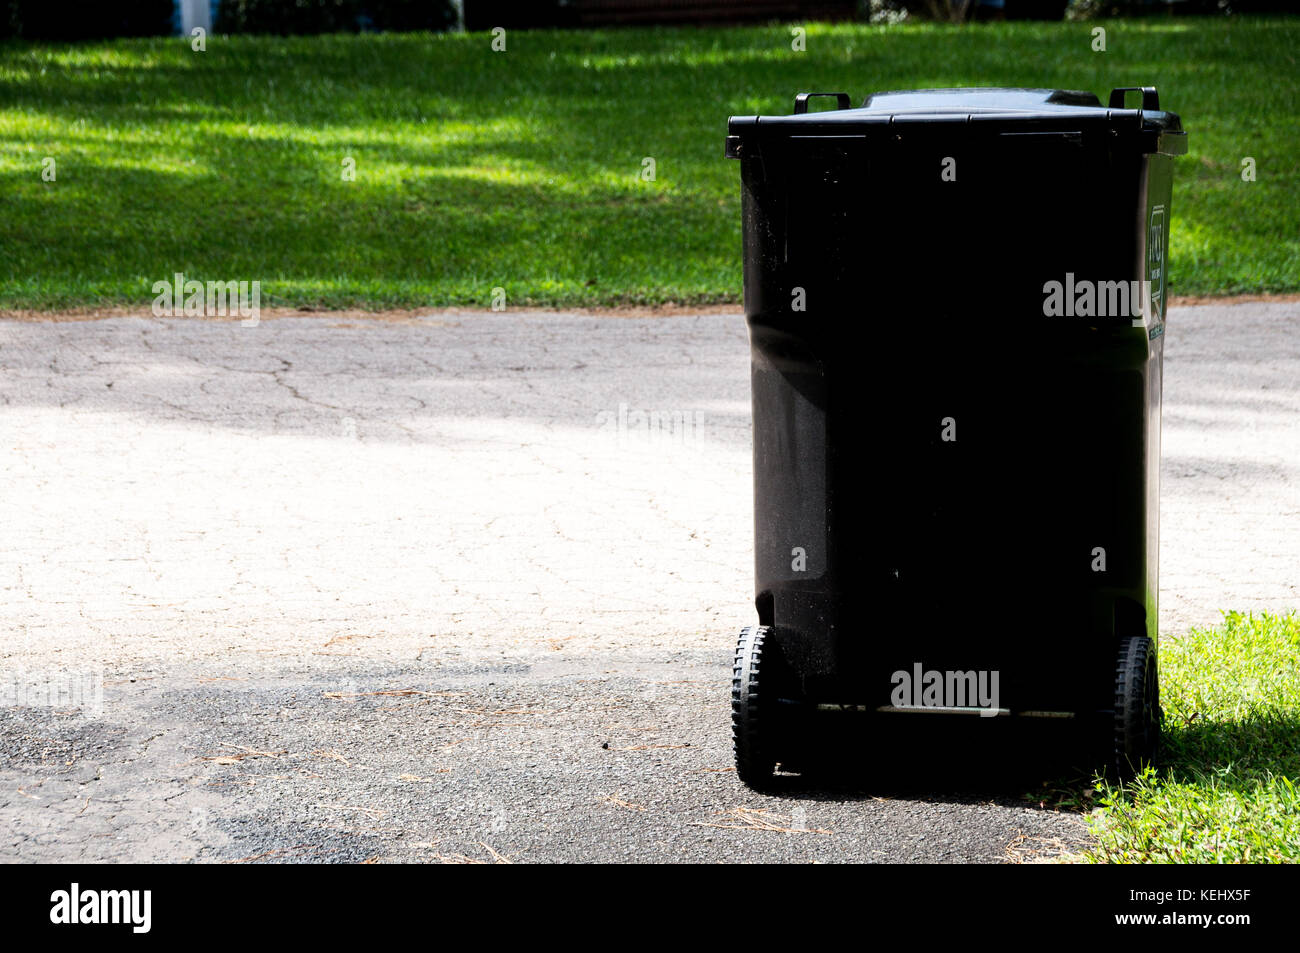 Trash can near the road - Stock Image